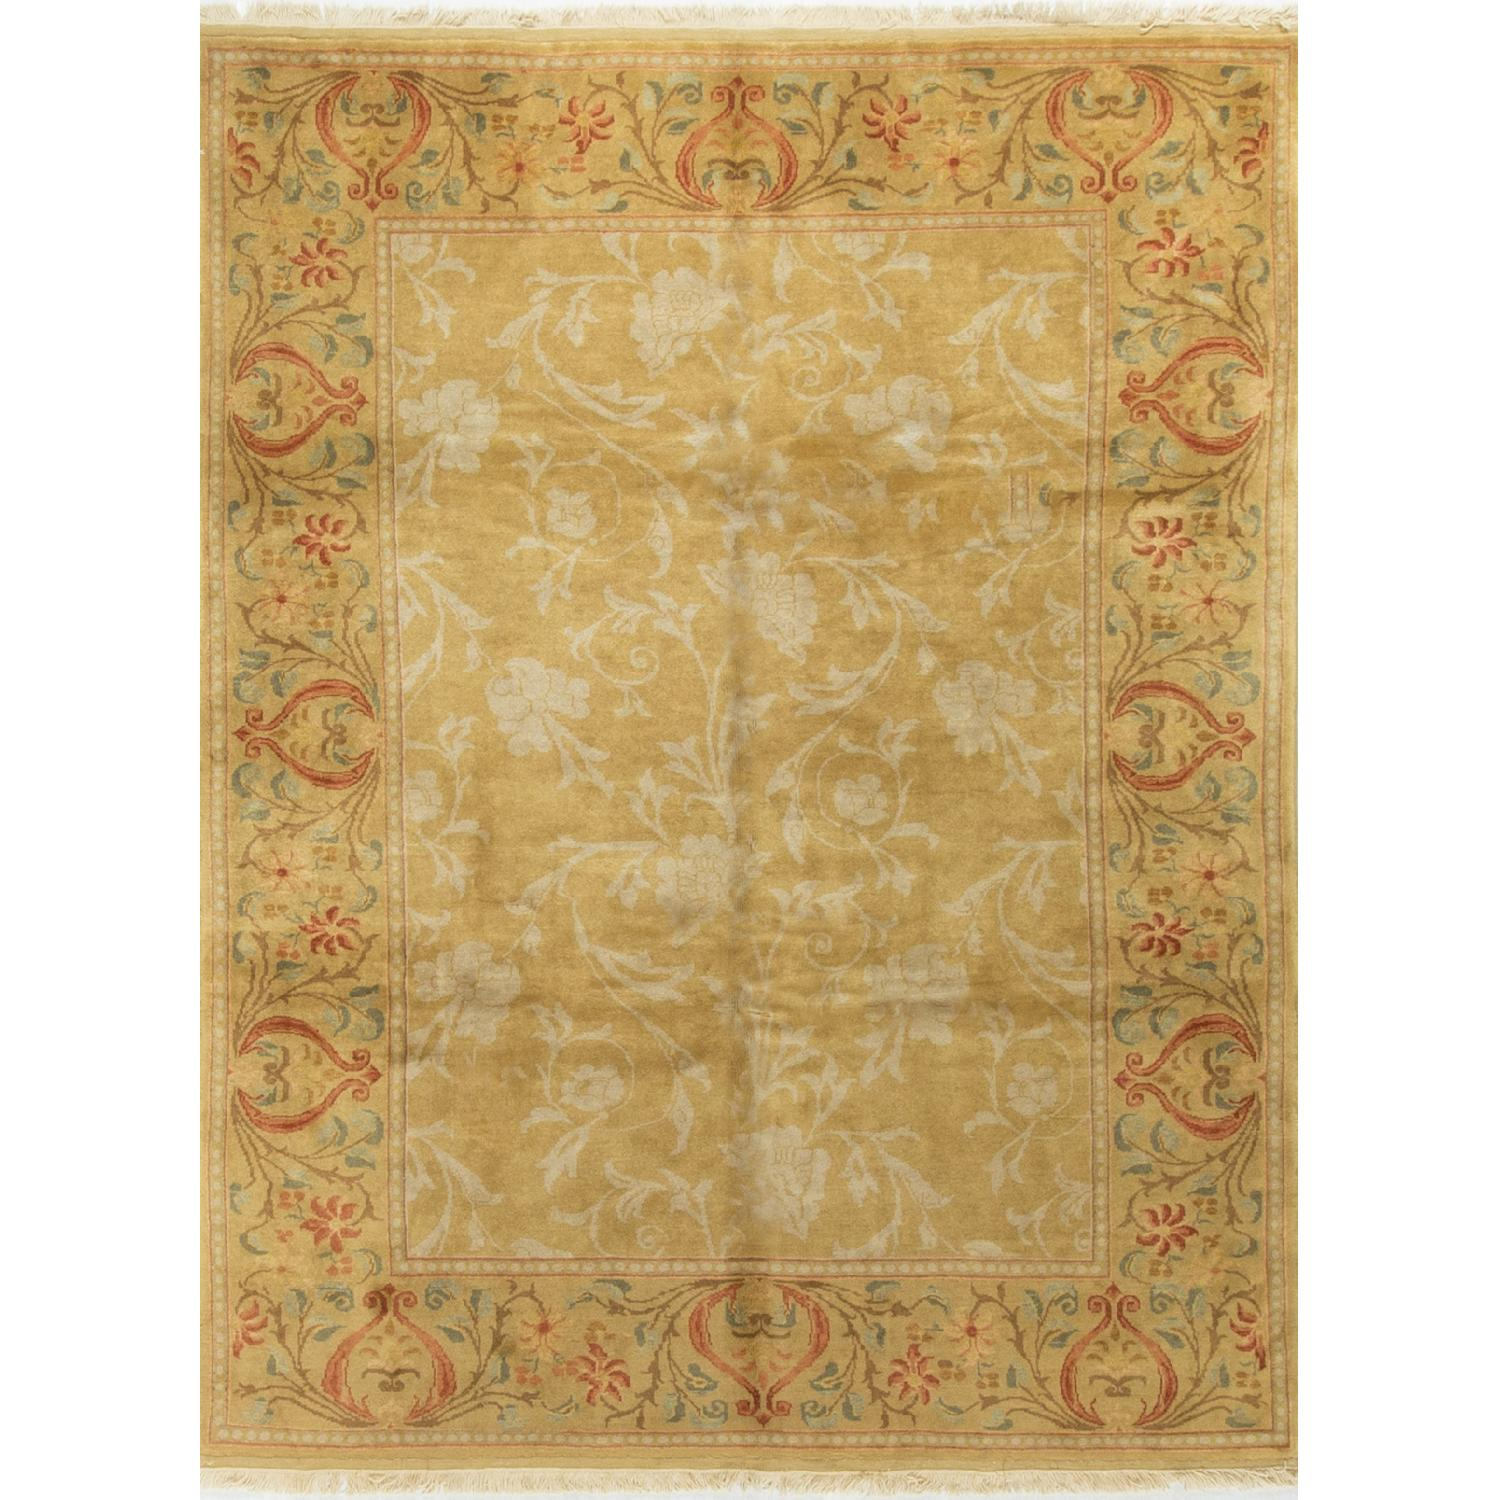 Modern Contemporary Hand Knotted Wool Rug in Gold - image-3